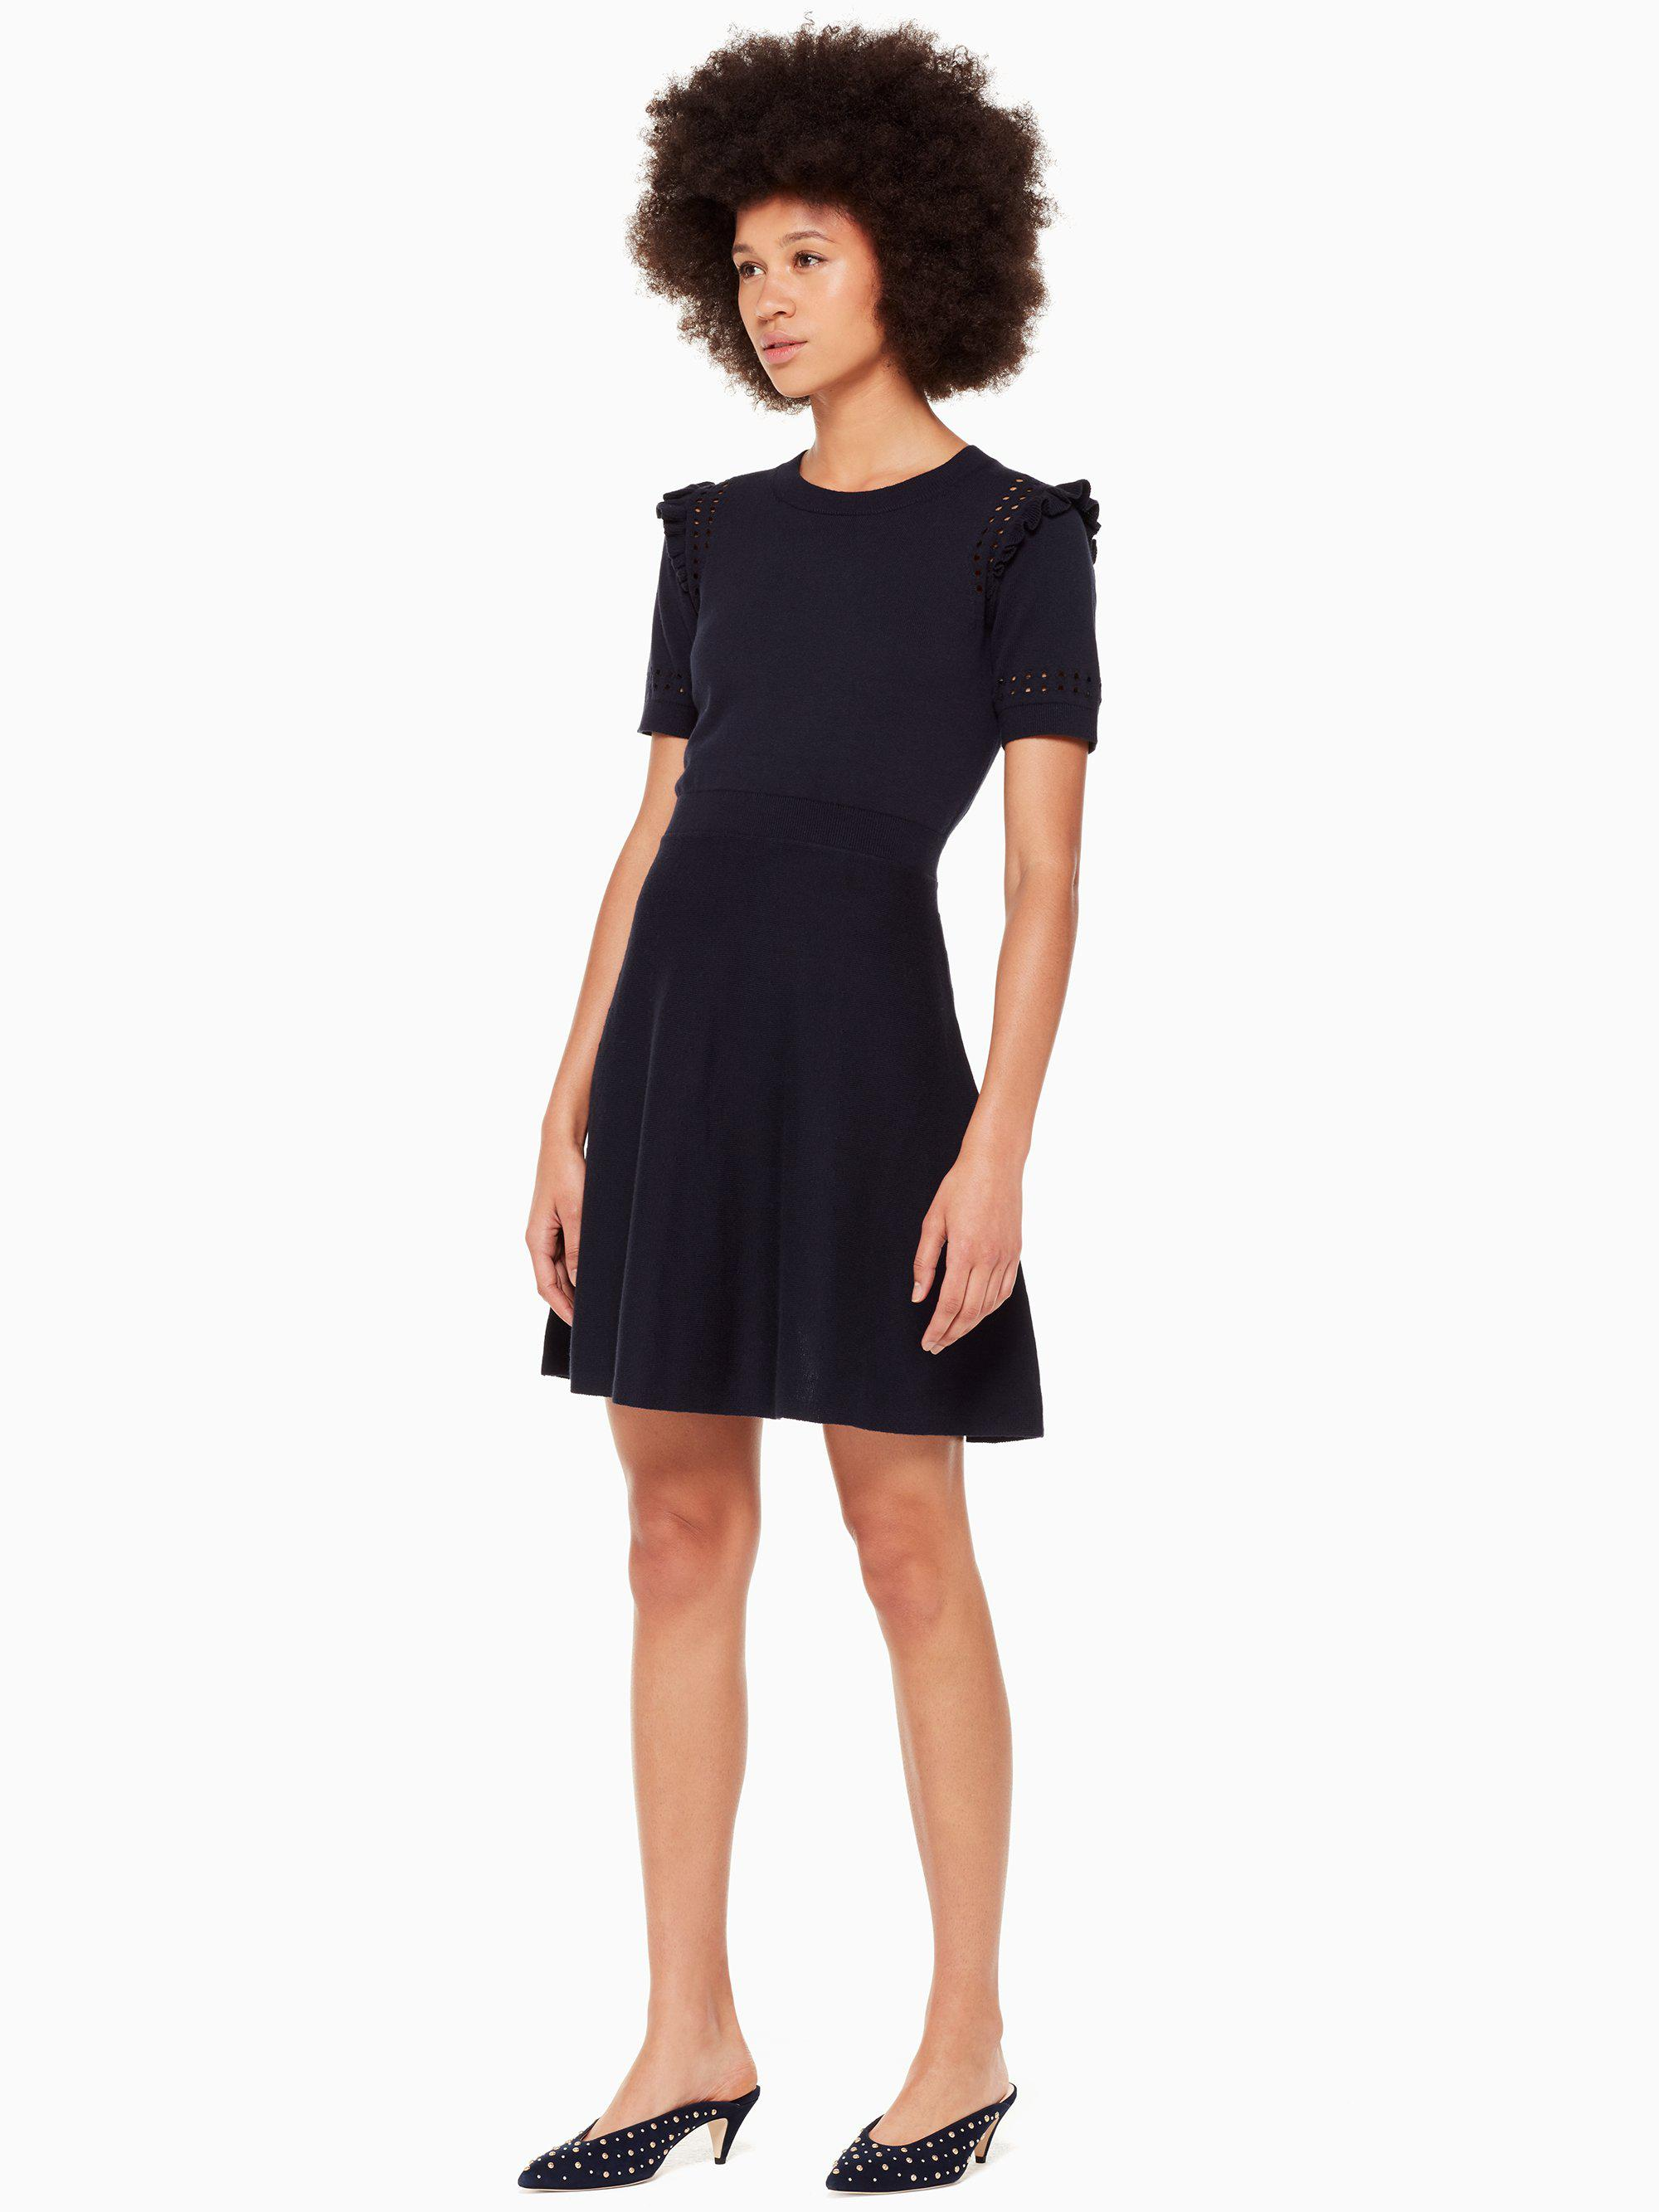 56c5d87160 Lyst - Kate Spade Ruffle Sweater Dress in Blue - Save 66%